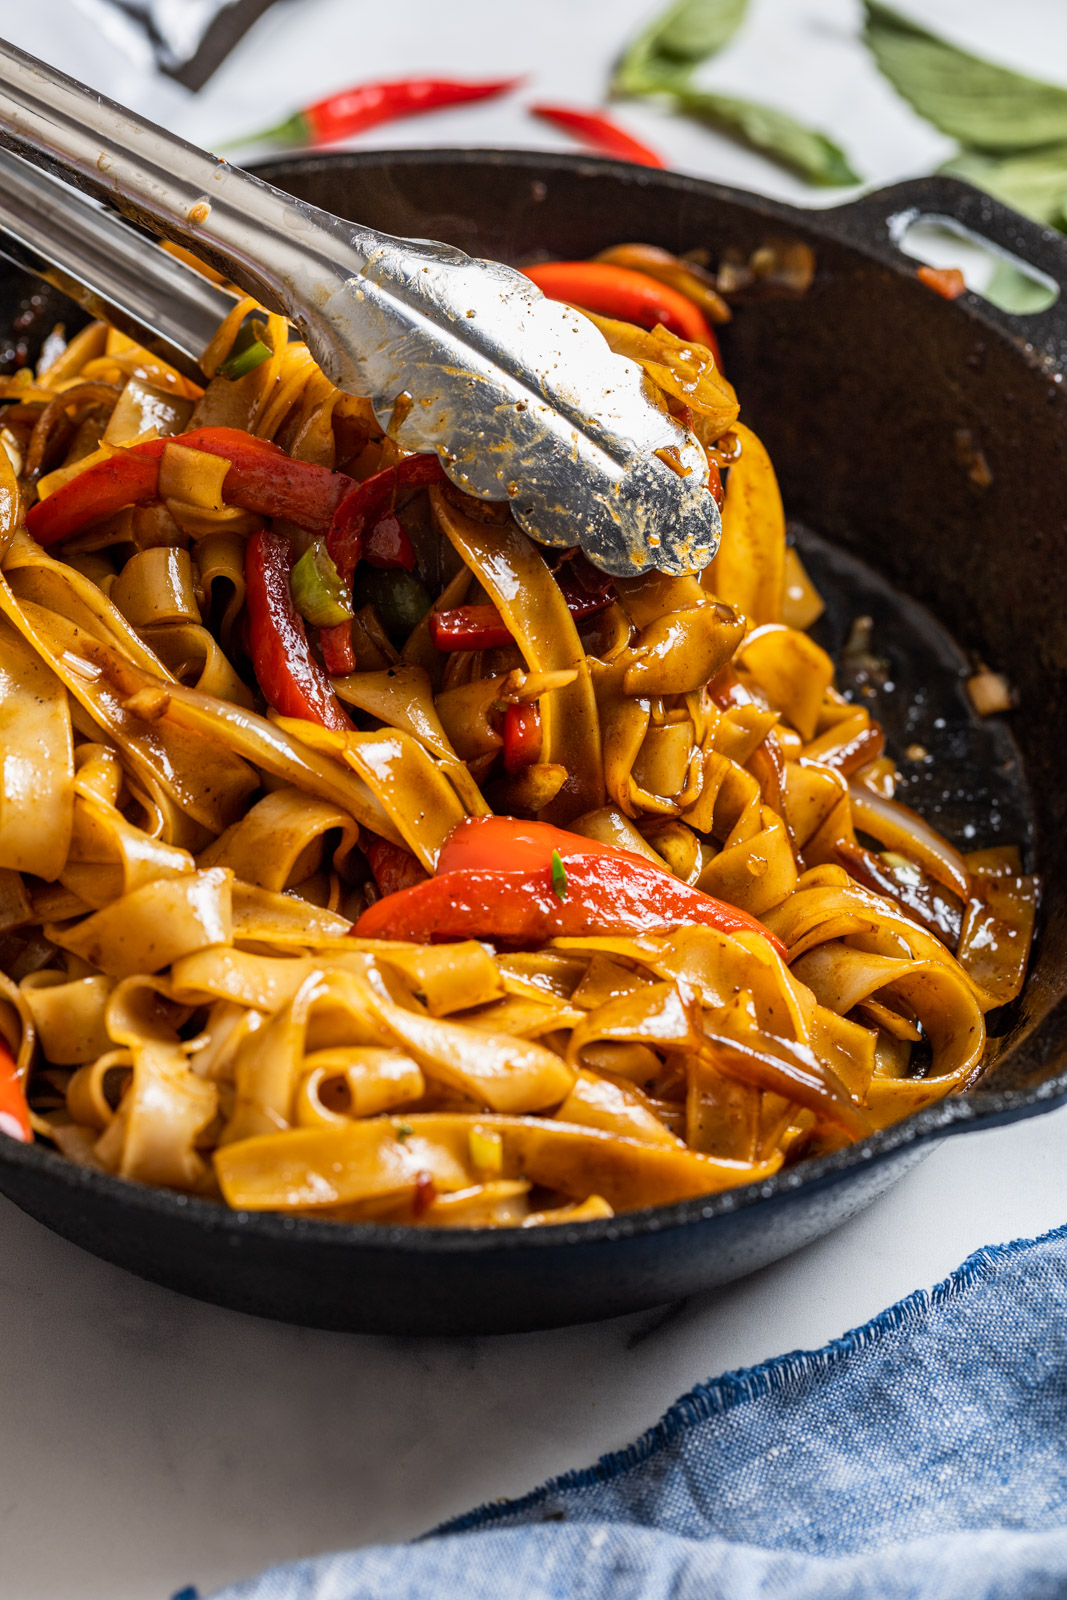 Thai Chili Yellowfin Tuna Steaks With Spicy Drunken Noodles (Pad Kee Mao)